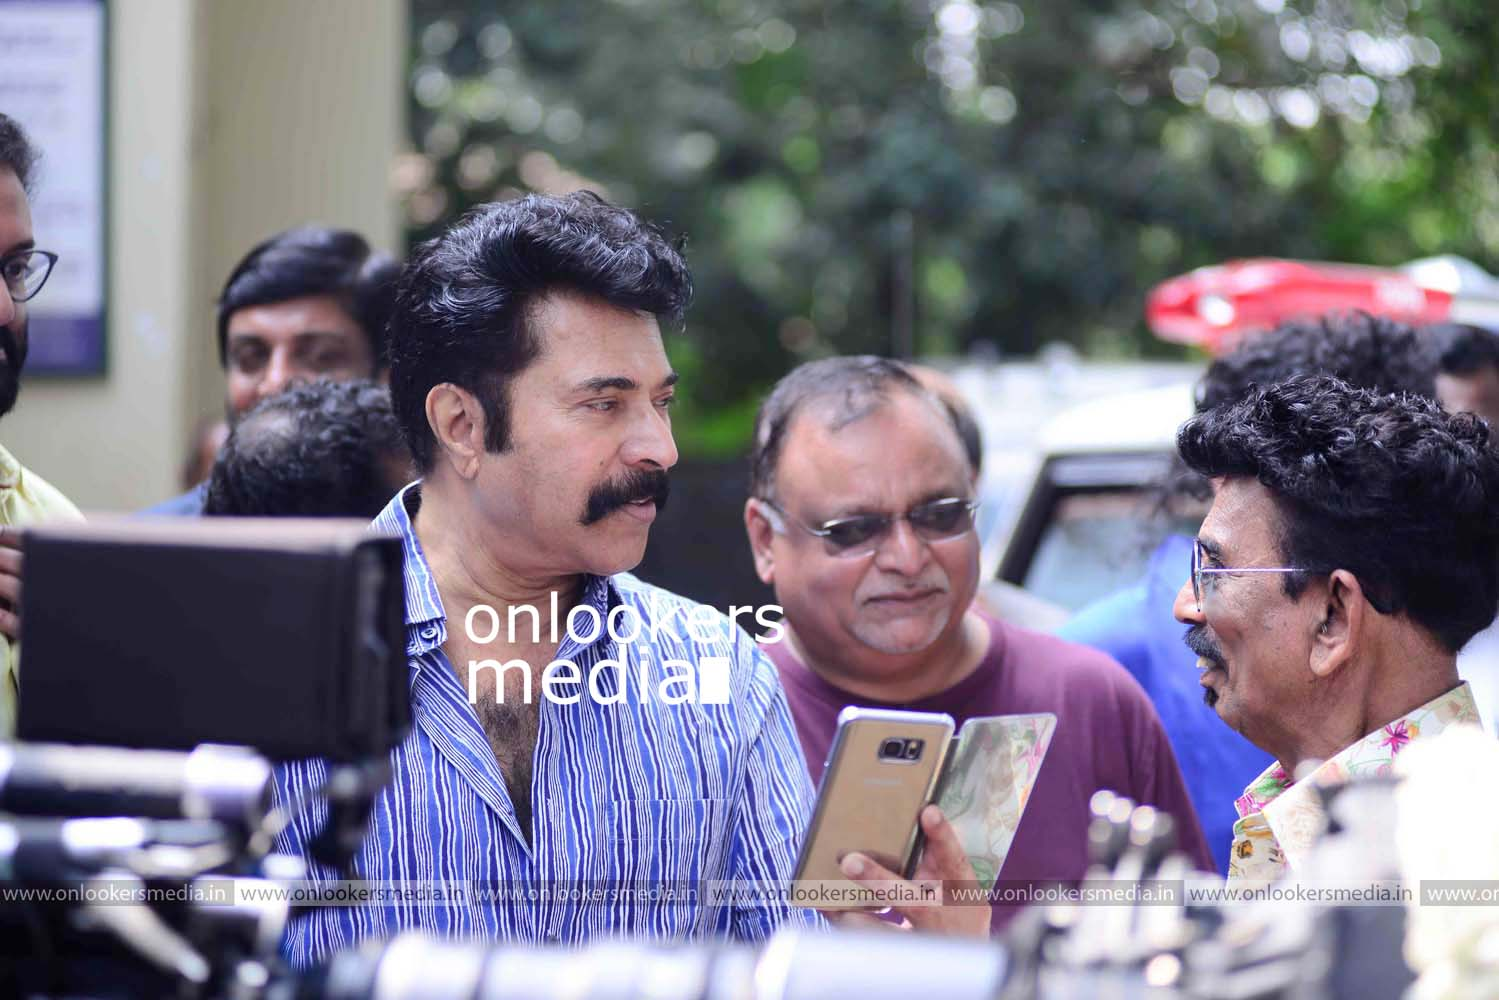 http://onlookersmedia.in/wp-content/uploads/2016/11/Puthan-Panam-Pooja-Stills-Photos-Mammootty-Ranjith-2.jpg